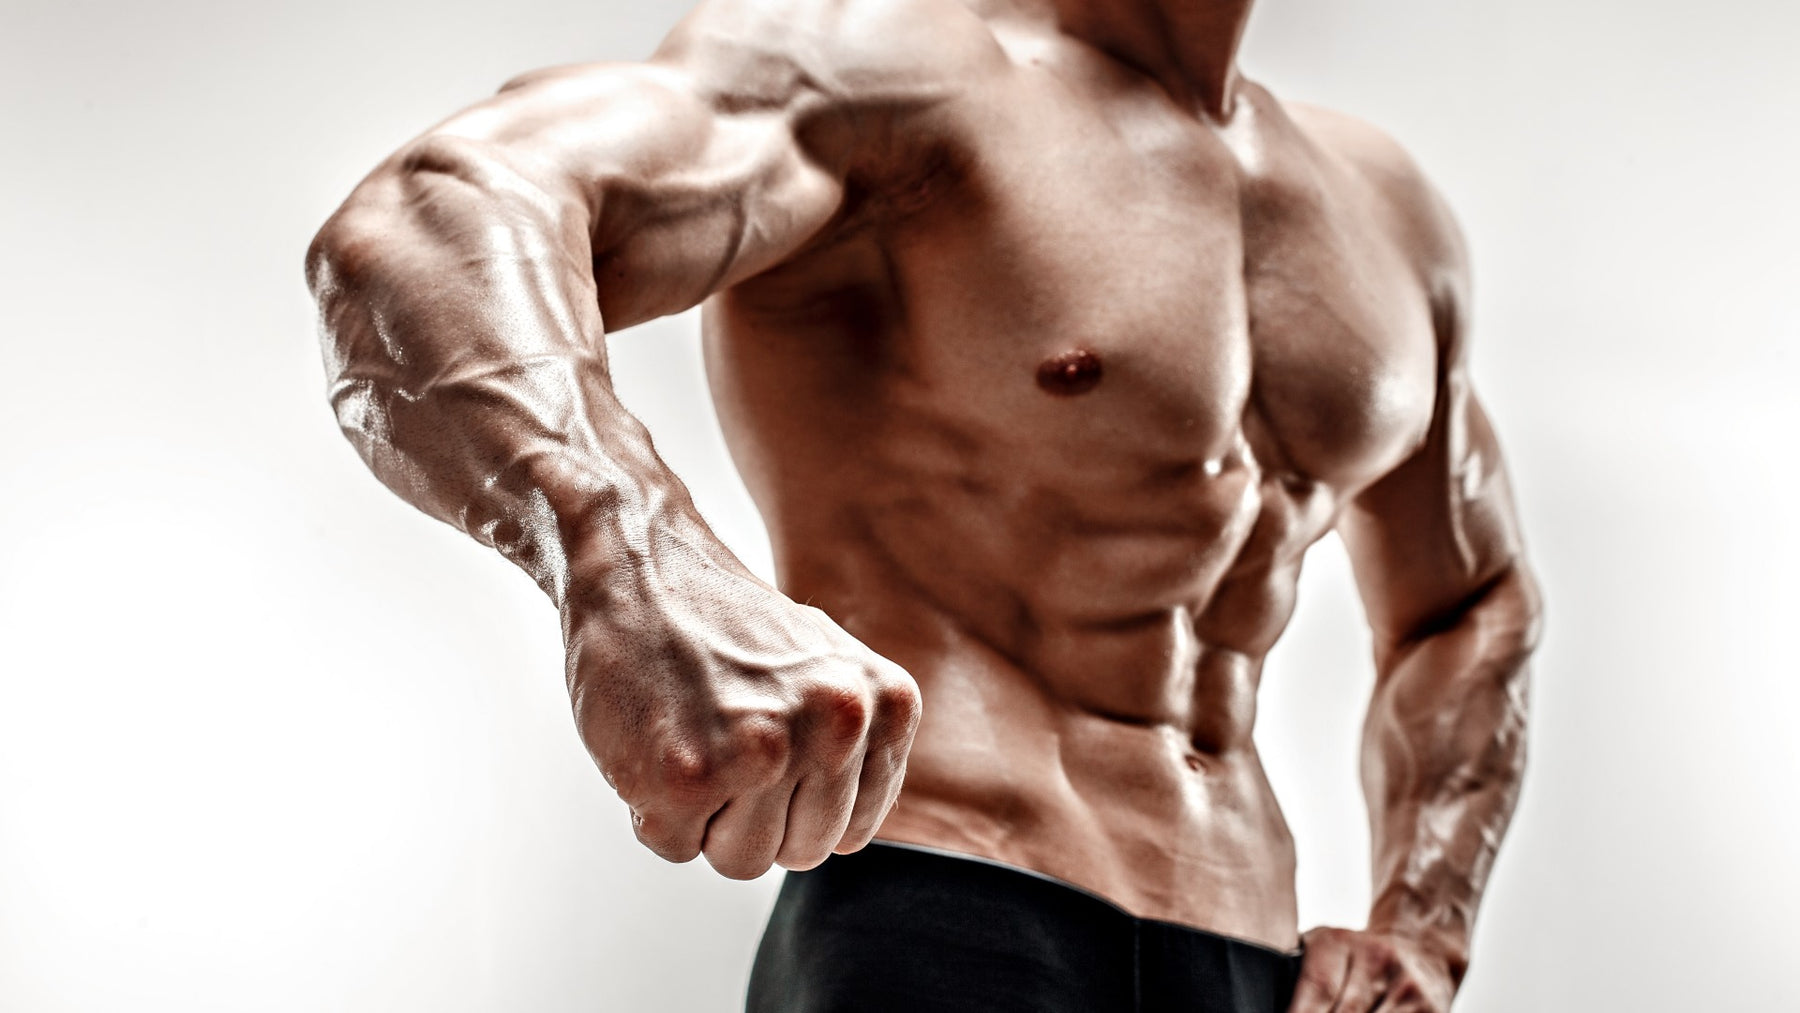 Explosive Growth: The 3 Week Chest Specialization Workout Program